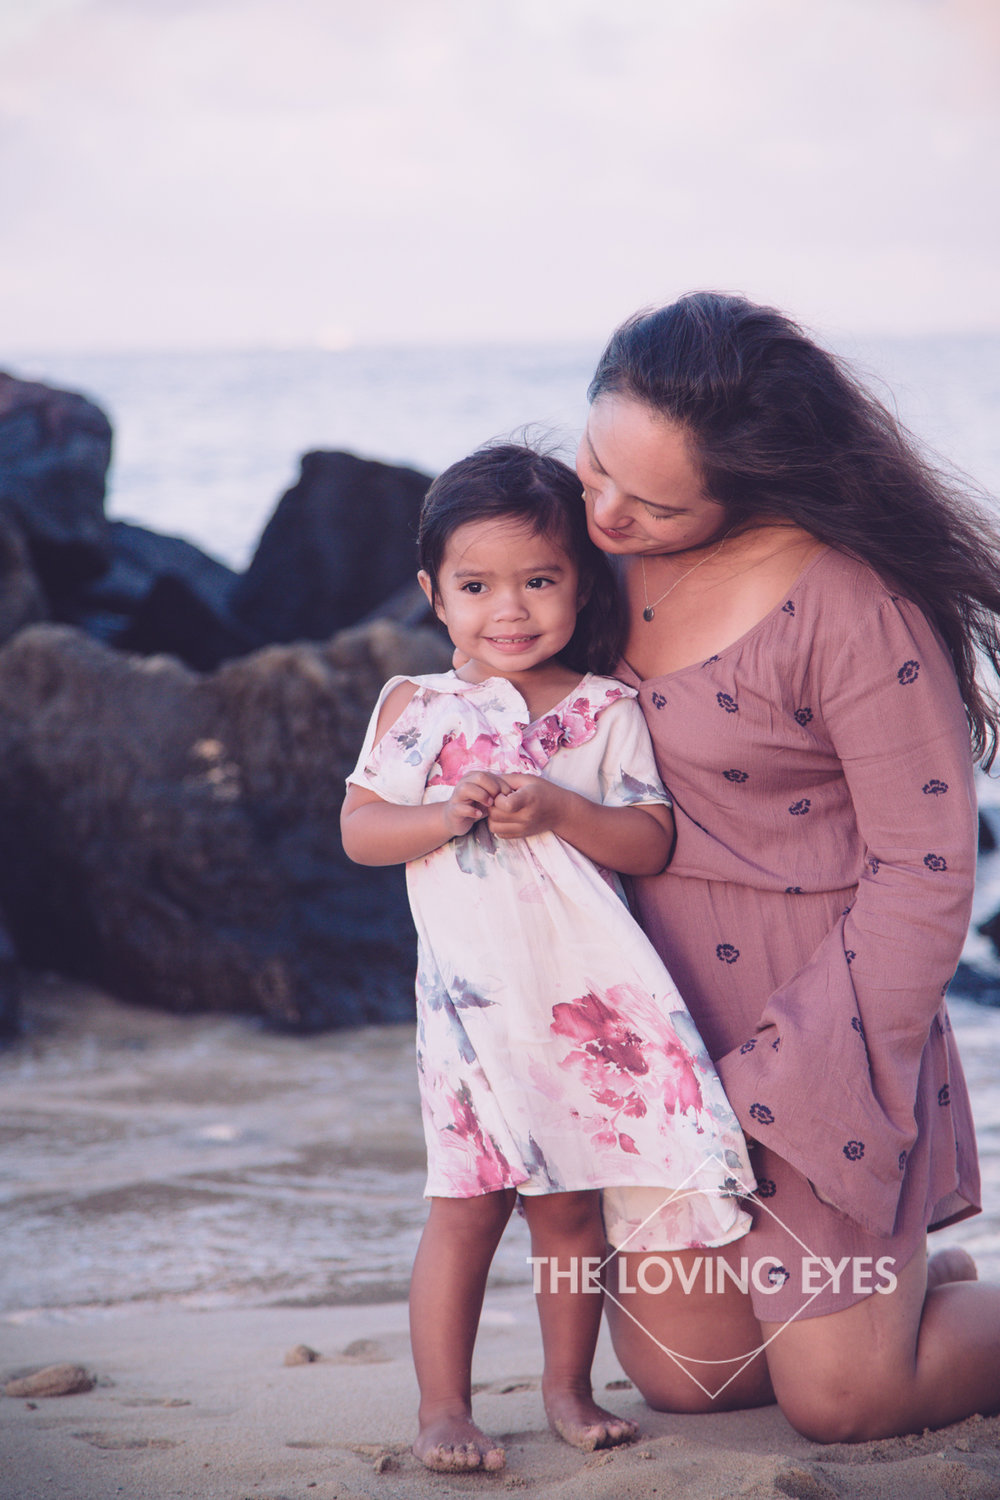 Mother and daughter on the beach in Waikiki during sunrise in Hawaii